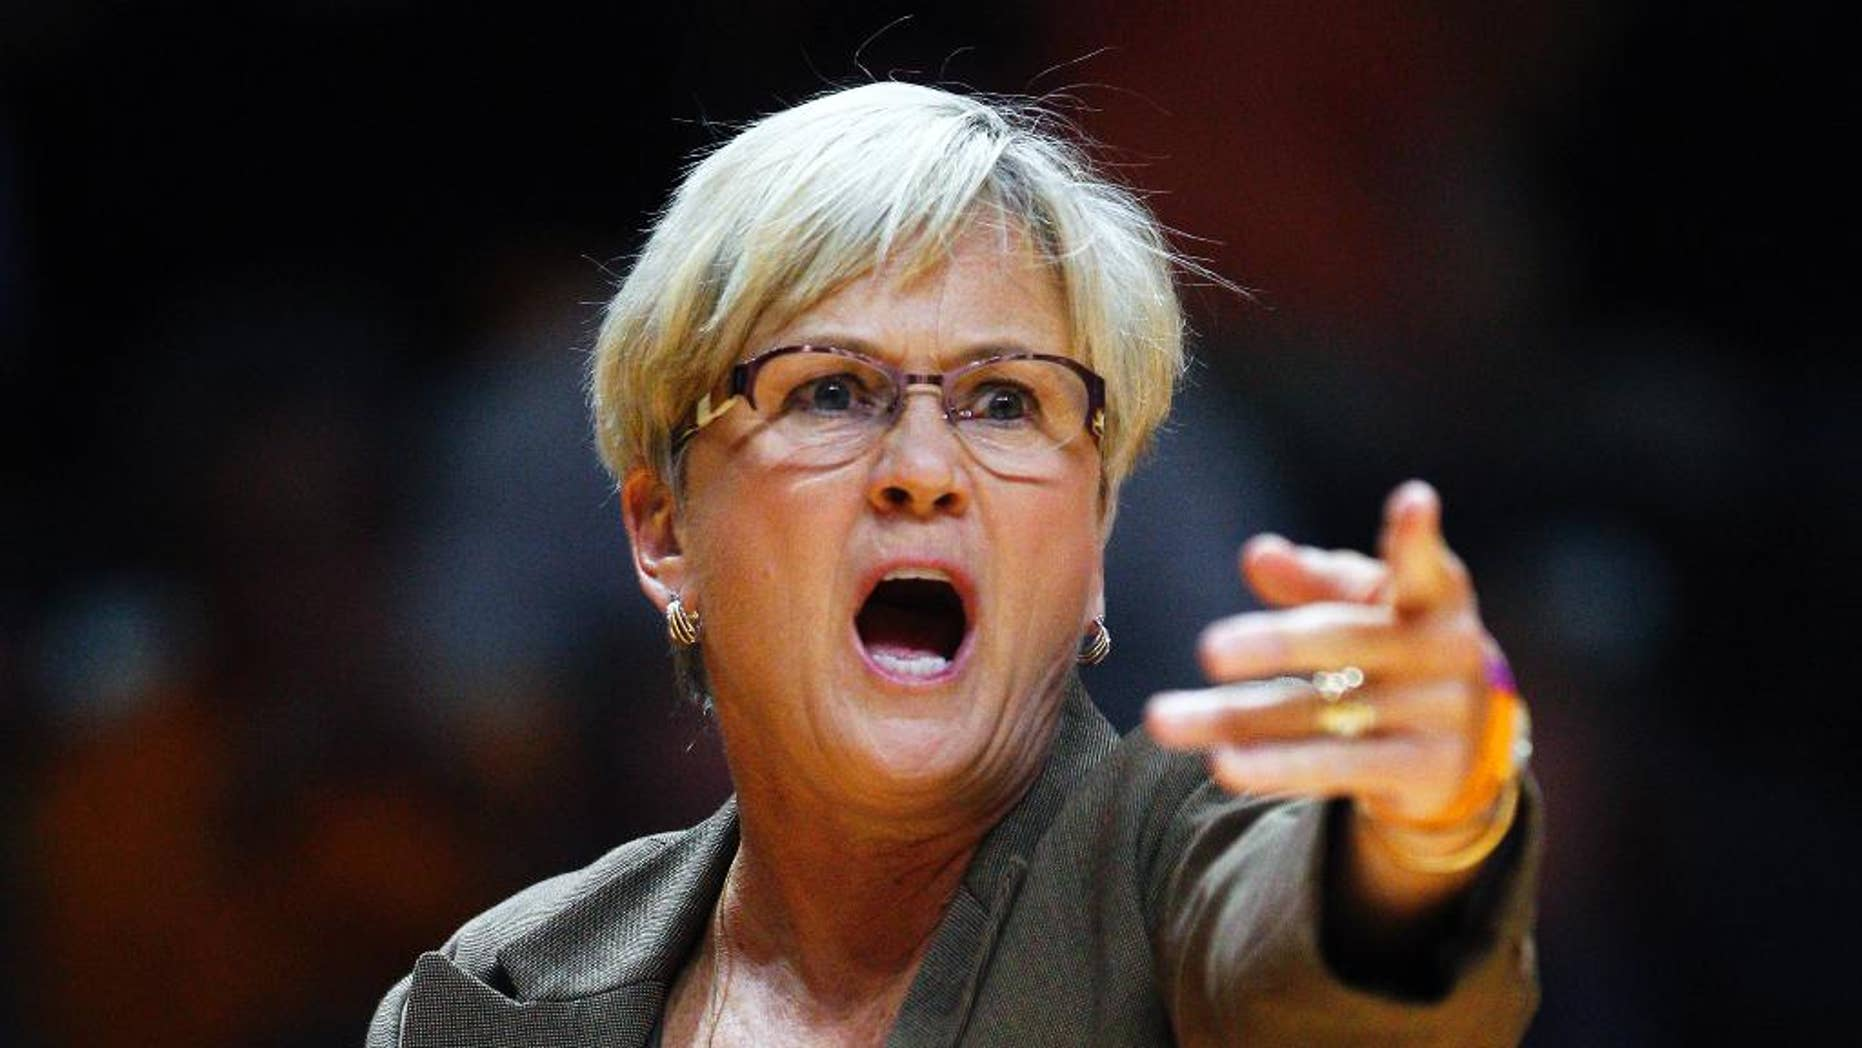 Tennessee head coach Holly Warlick directs her players in the first half of an NCAA college basketball game against Carson Newman, Sunday, Nov. 9, 2014, in Knoxville, Tenn. (AP Photo/Wade Payne)